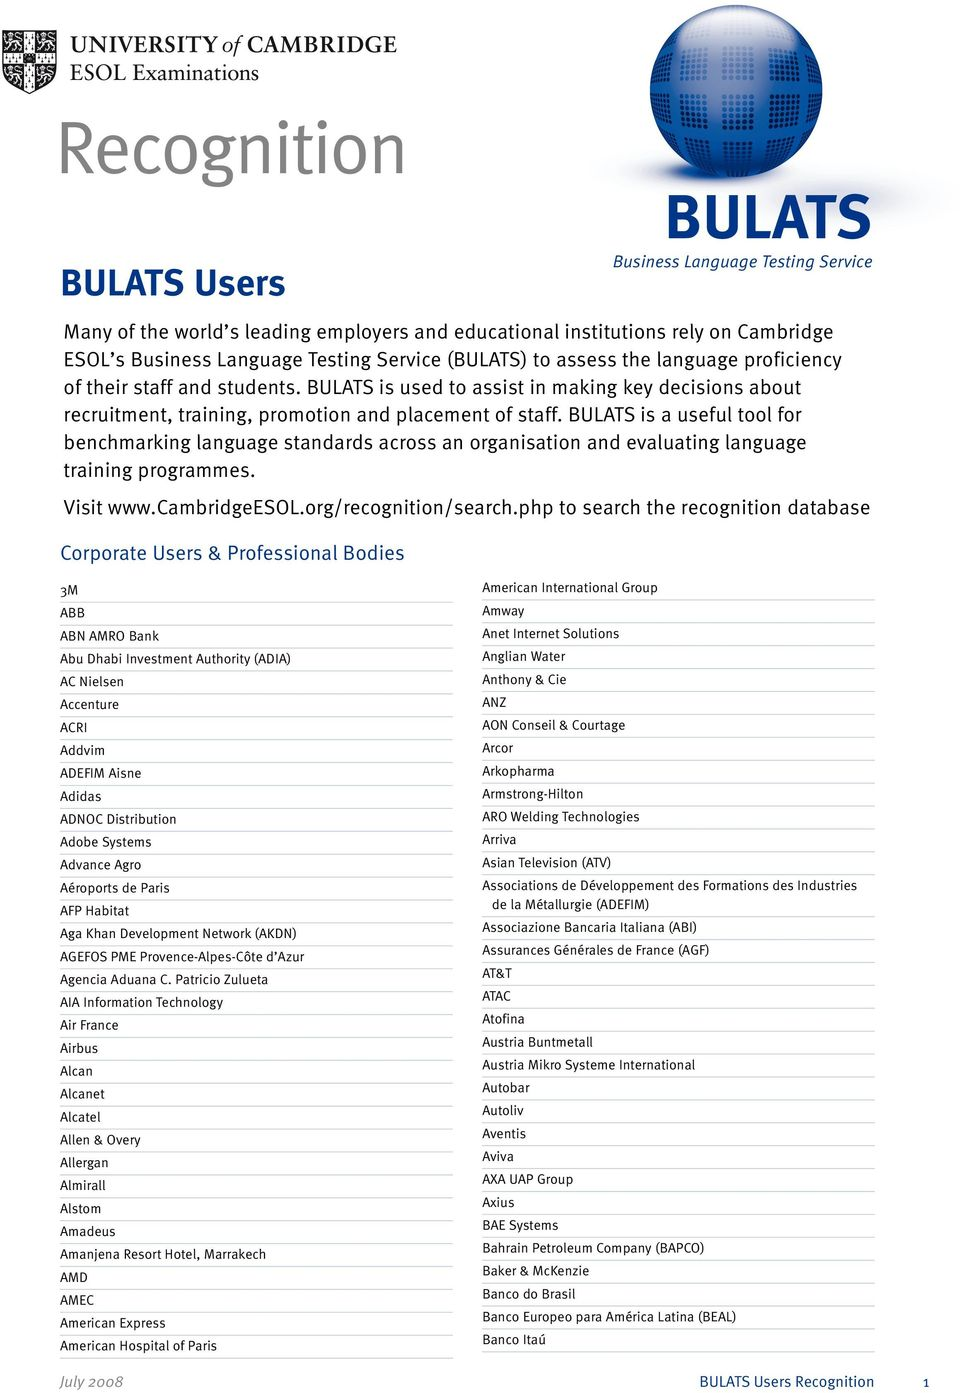 BULATS is a useful tool for benchmarking language standards across an organisation and evaluating language training programmes. Visit www.cambridgeesol.org/recognition/search.